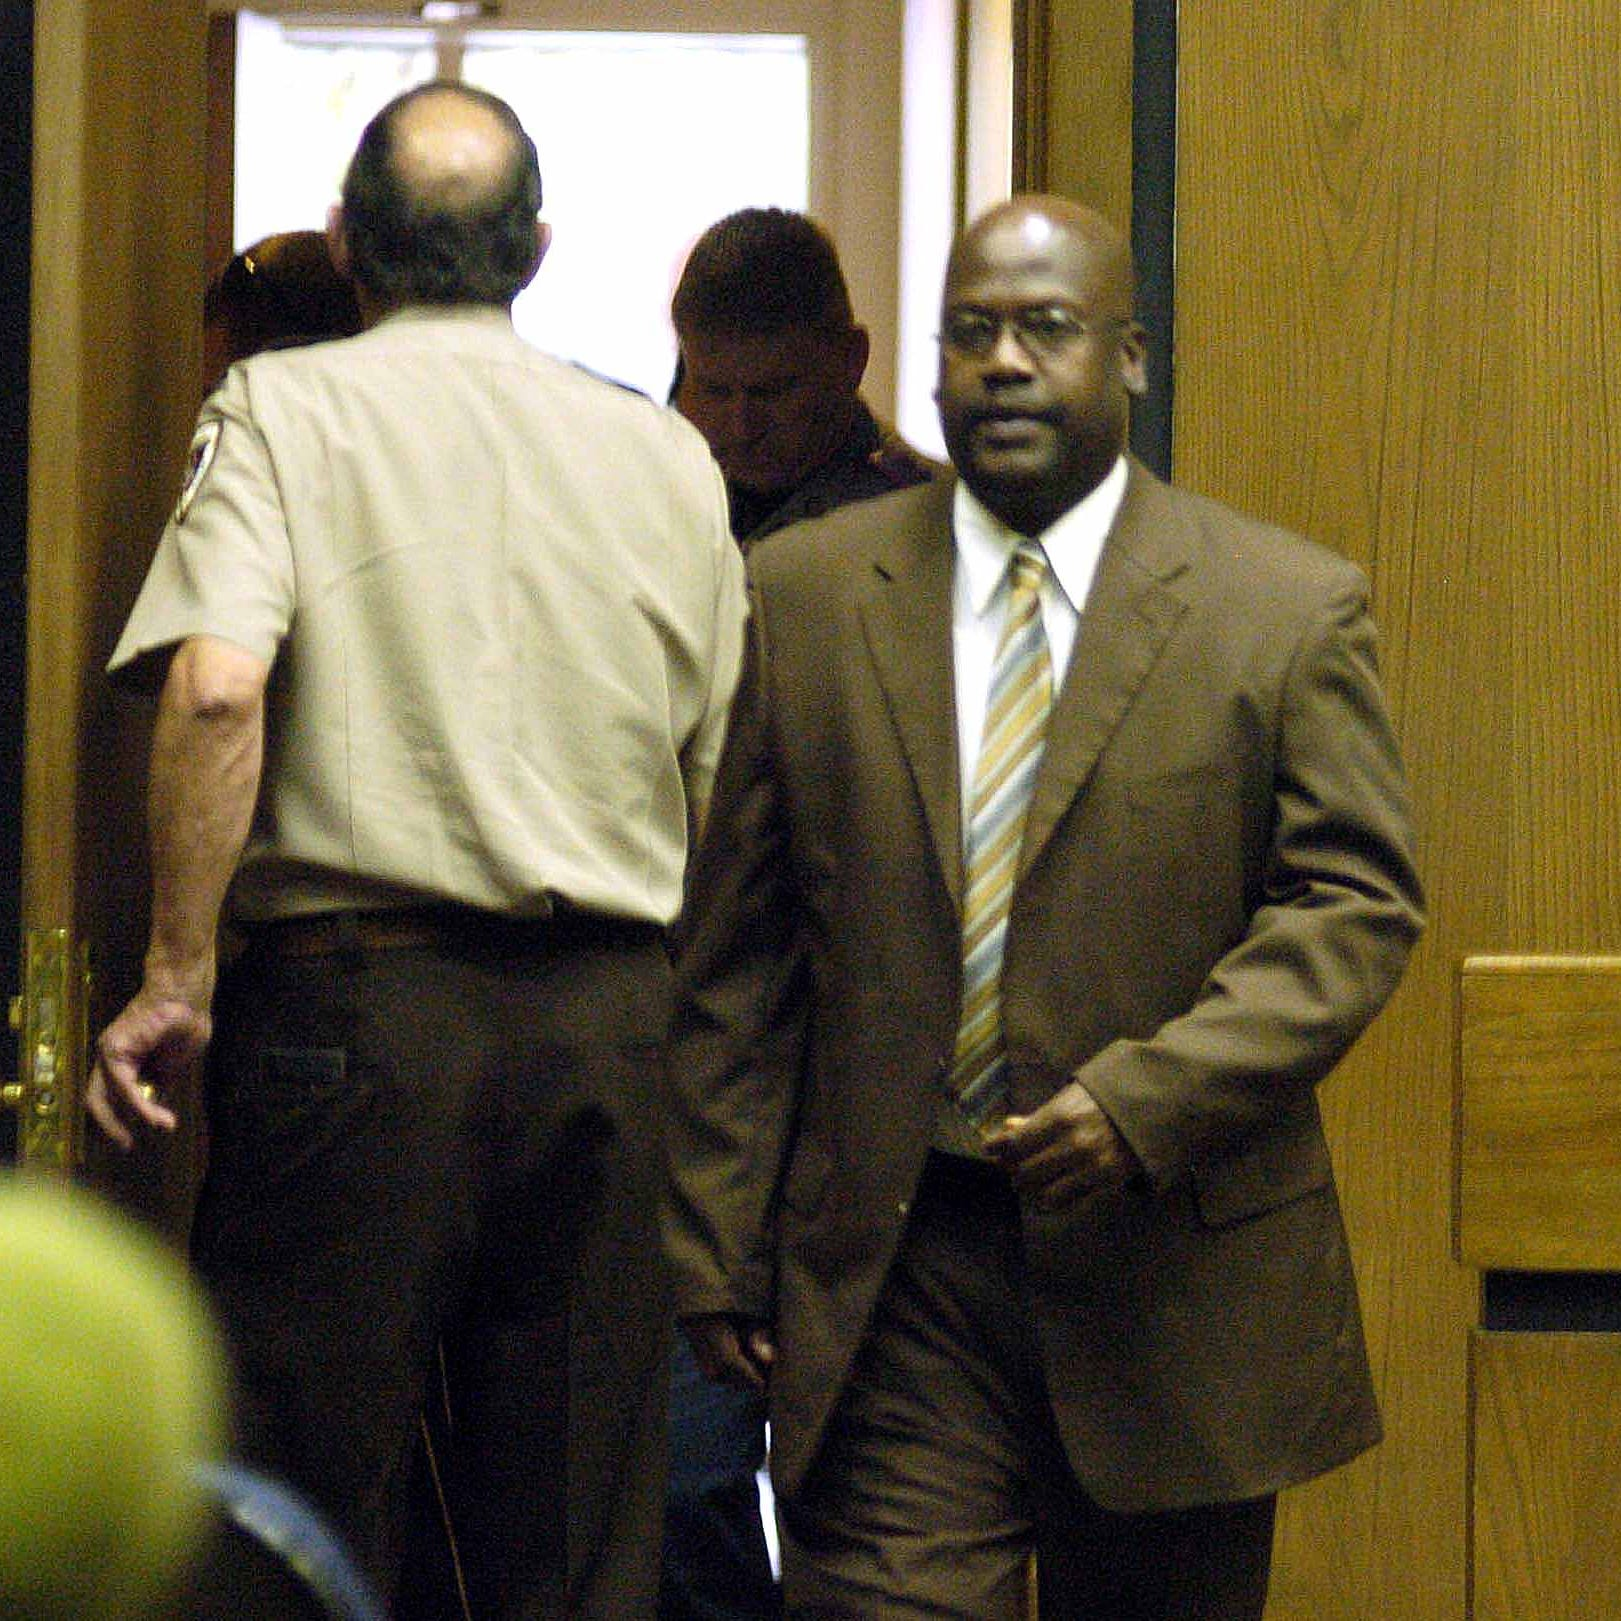 After six trials for same crime, Curtis Flowers' 'extraordinary' case gets Supreme Court hearing